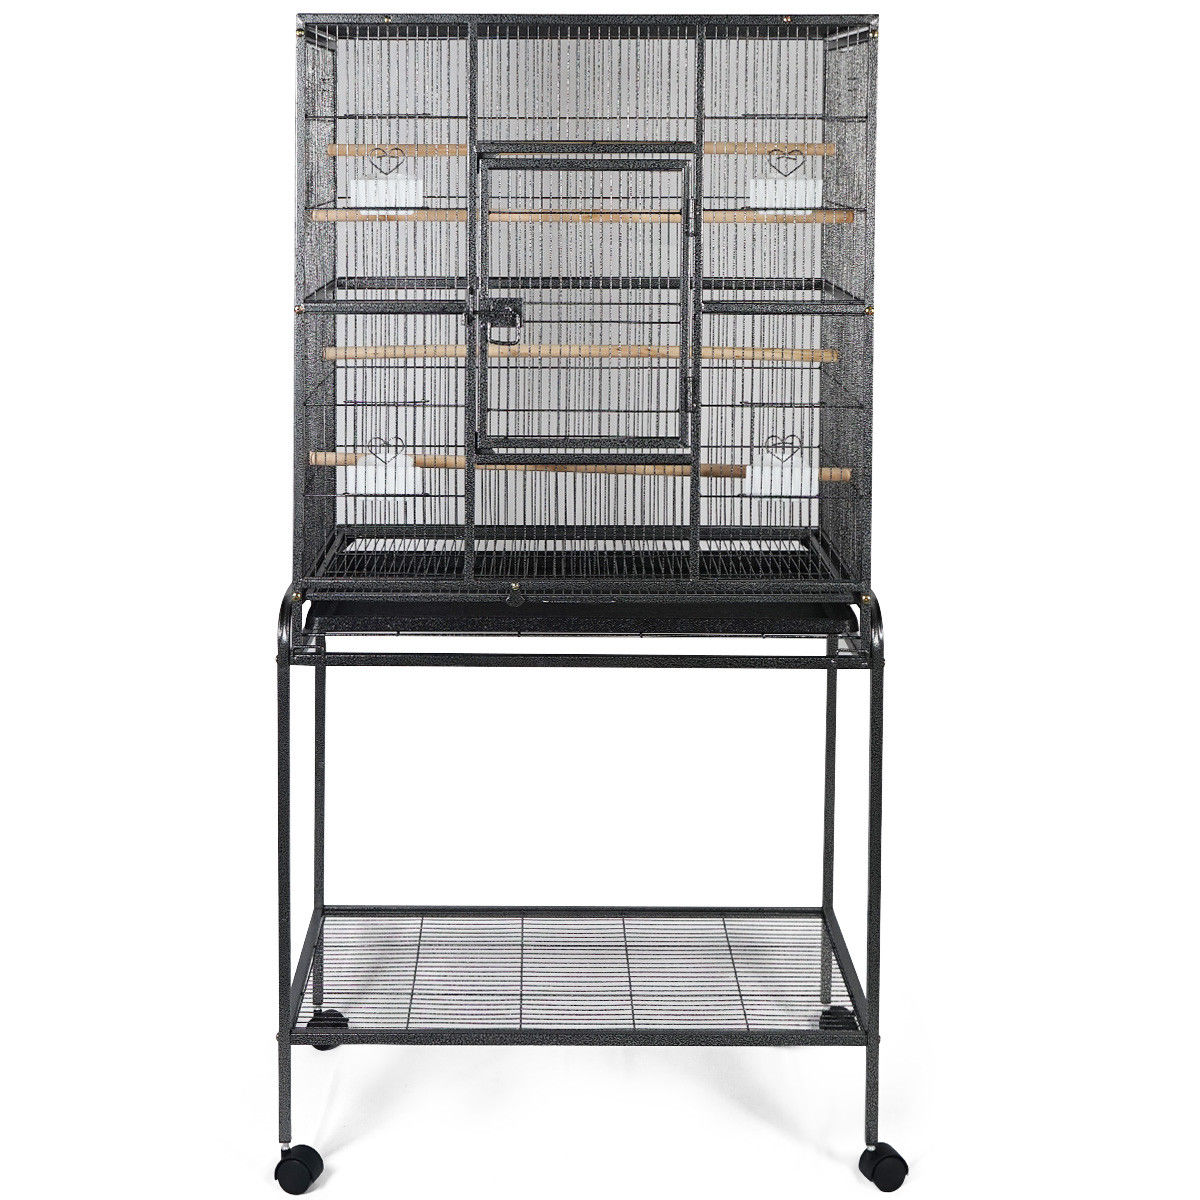 Gymax Bird Parrot Cage Heavy Duty Black